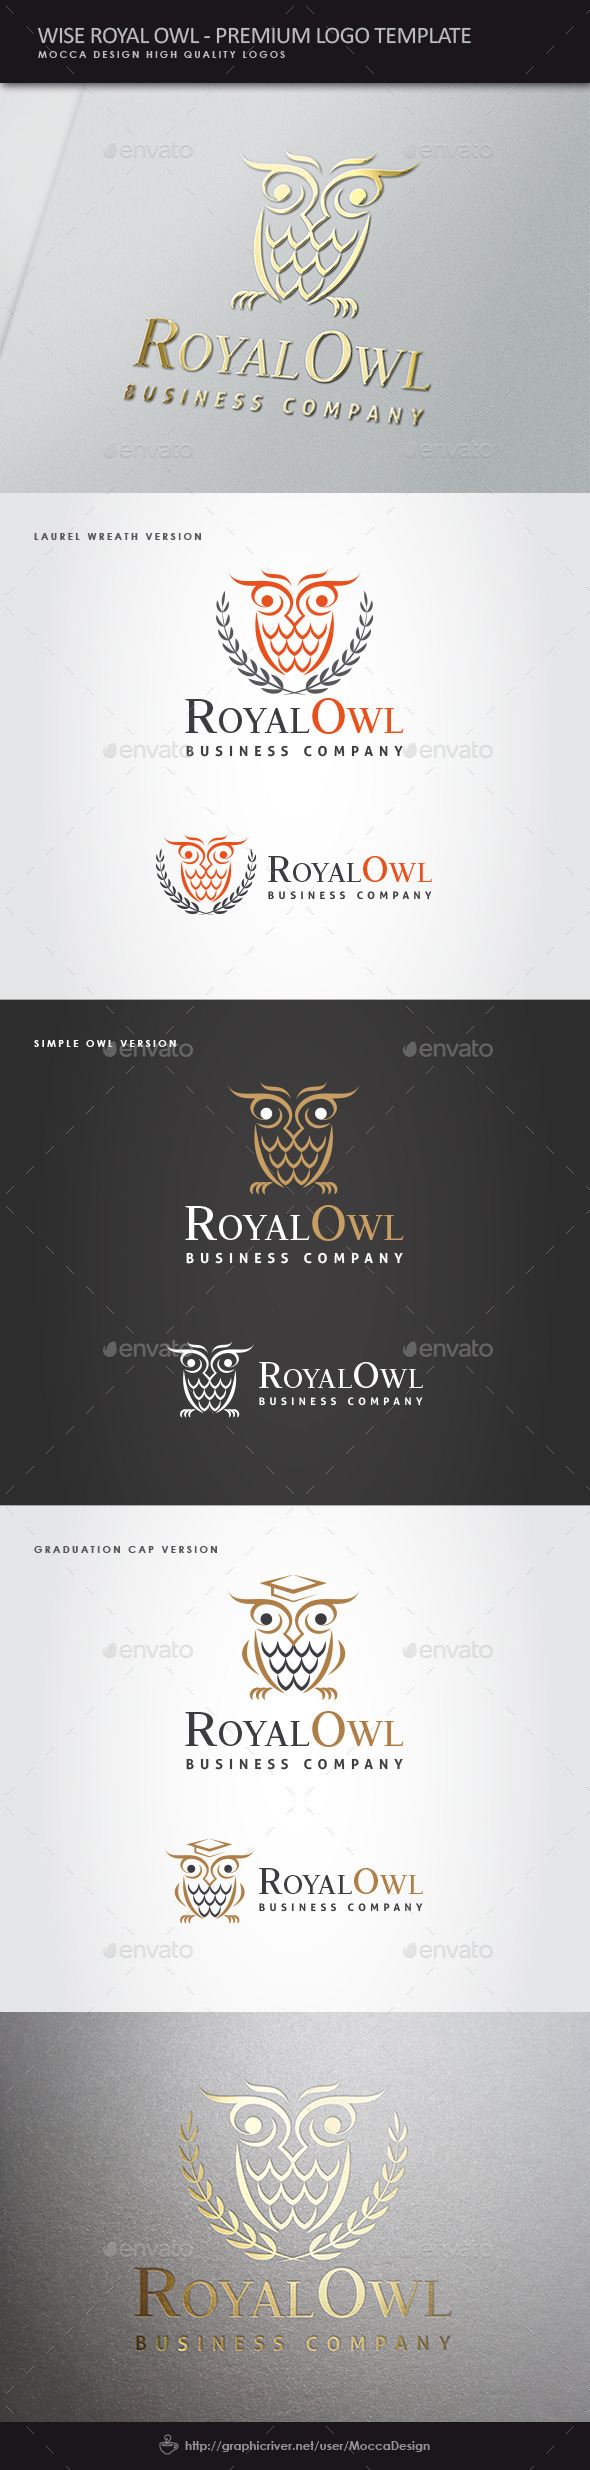 GraphicRiver Wise Royal Owl Logo 9835494